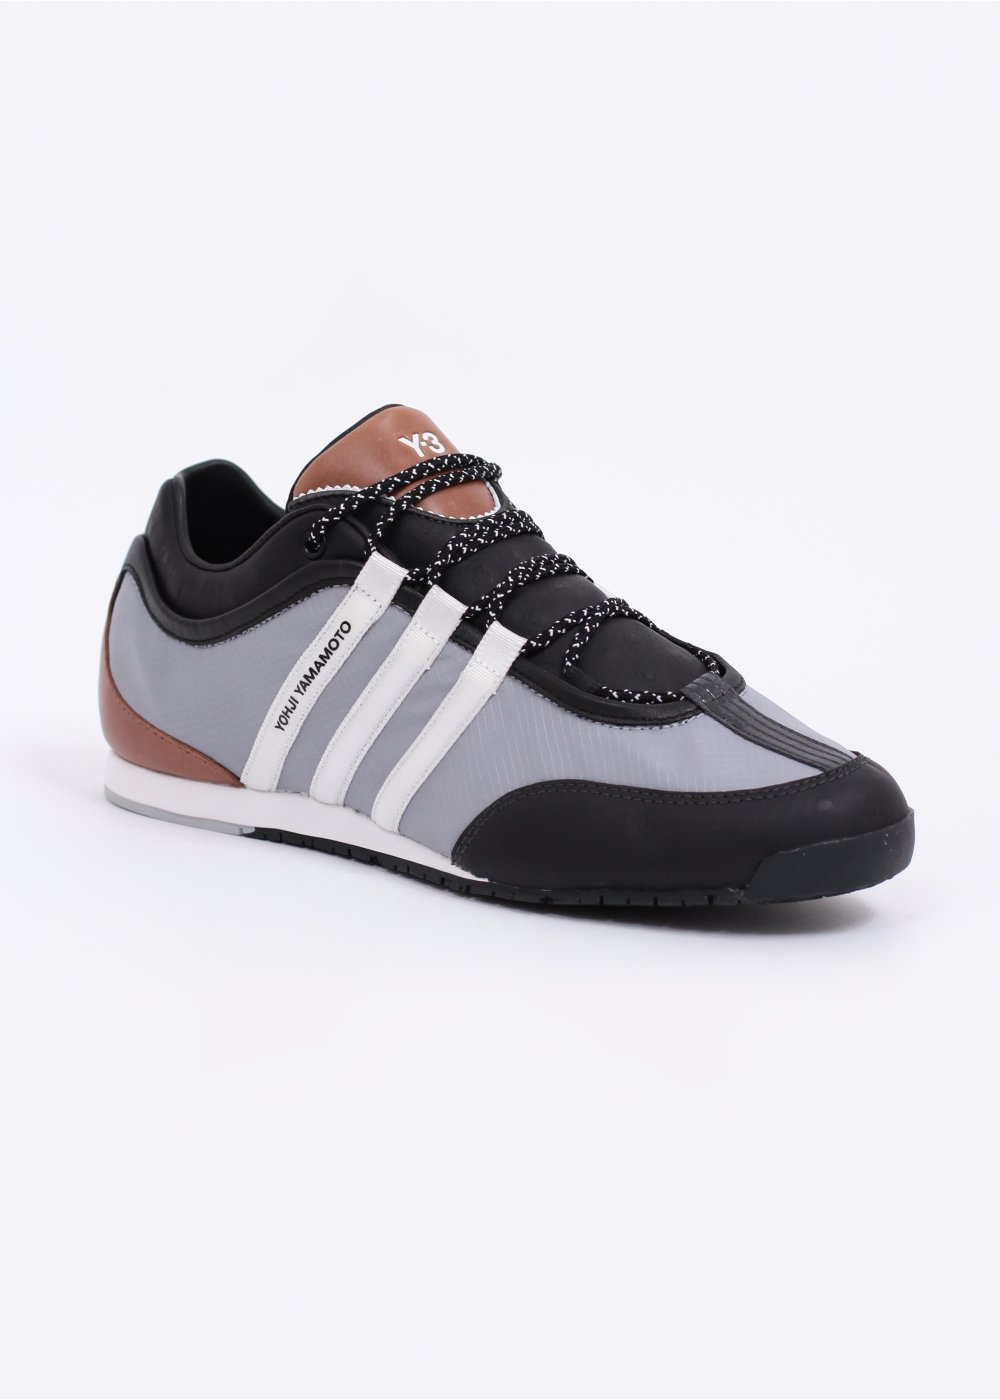 mens adidas y3 trainers uk